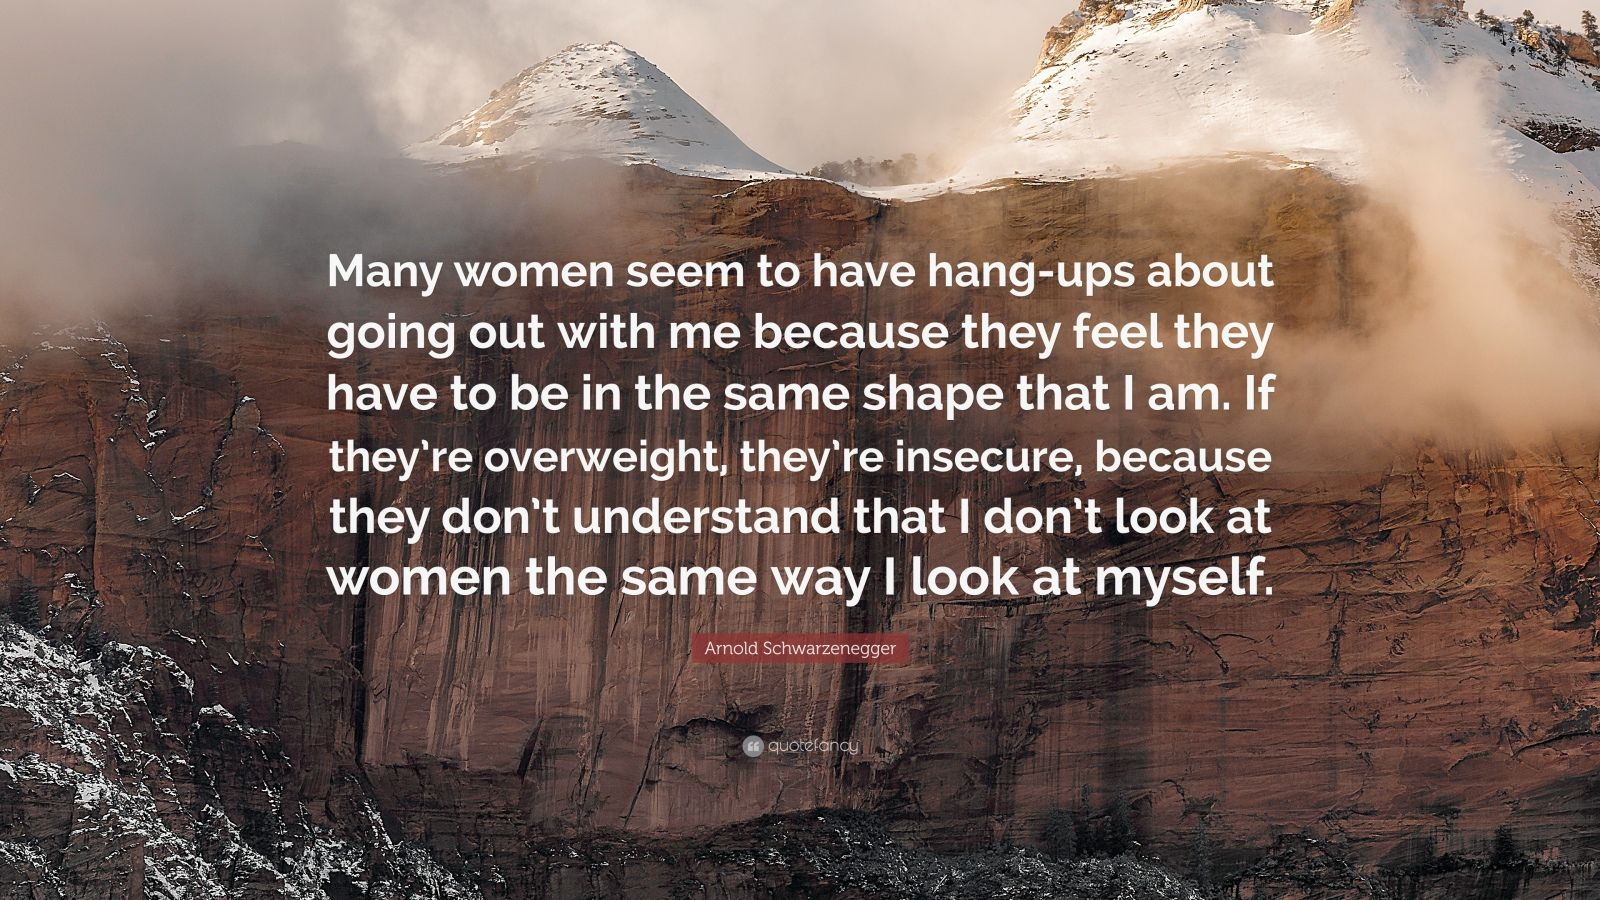 "Arnold Schwarzenegger Quote: ""Many women seem to have hang-ups about going out with me because they feel they have to be in the same shape that I am. If they're overweight, they're insecure, because they don't understand that I don't look at women the same way I look at myself."""